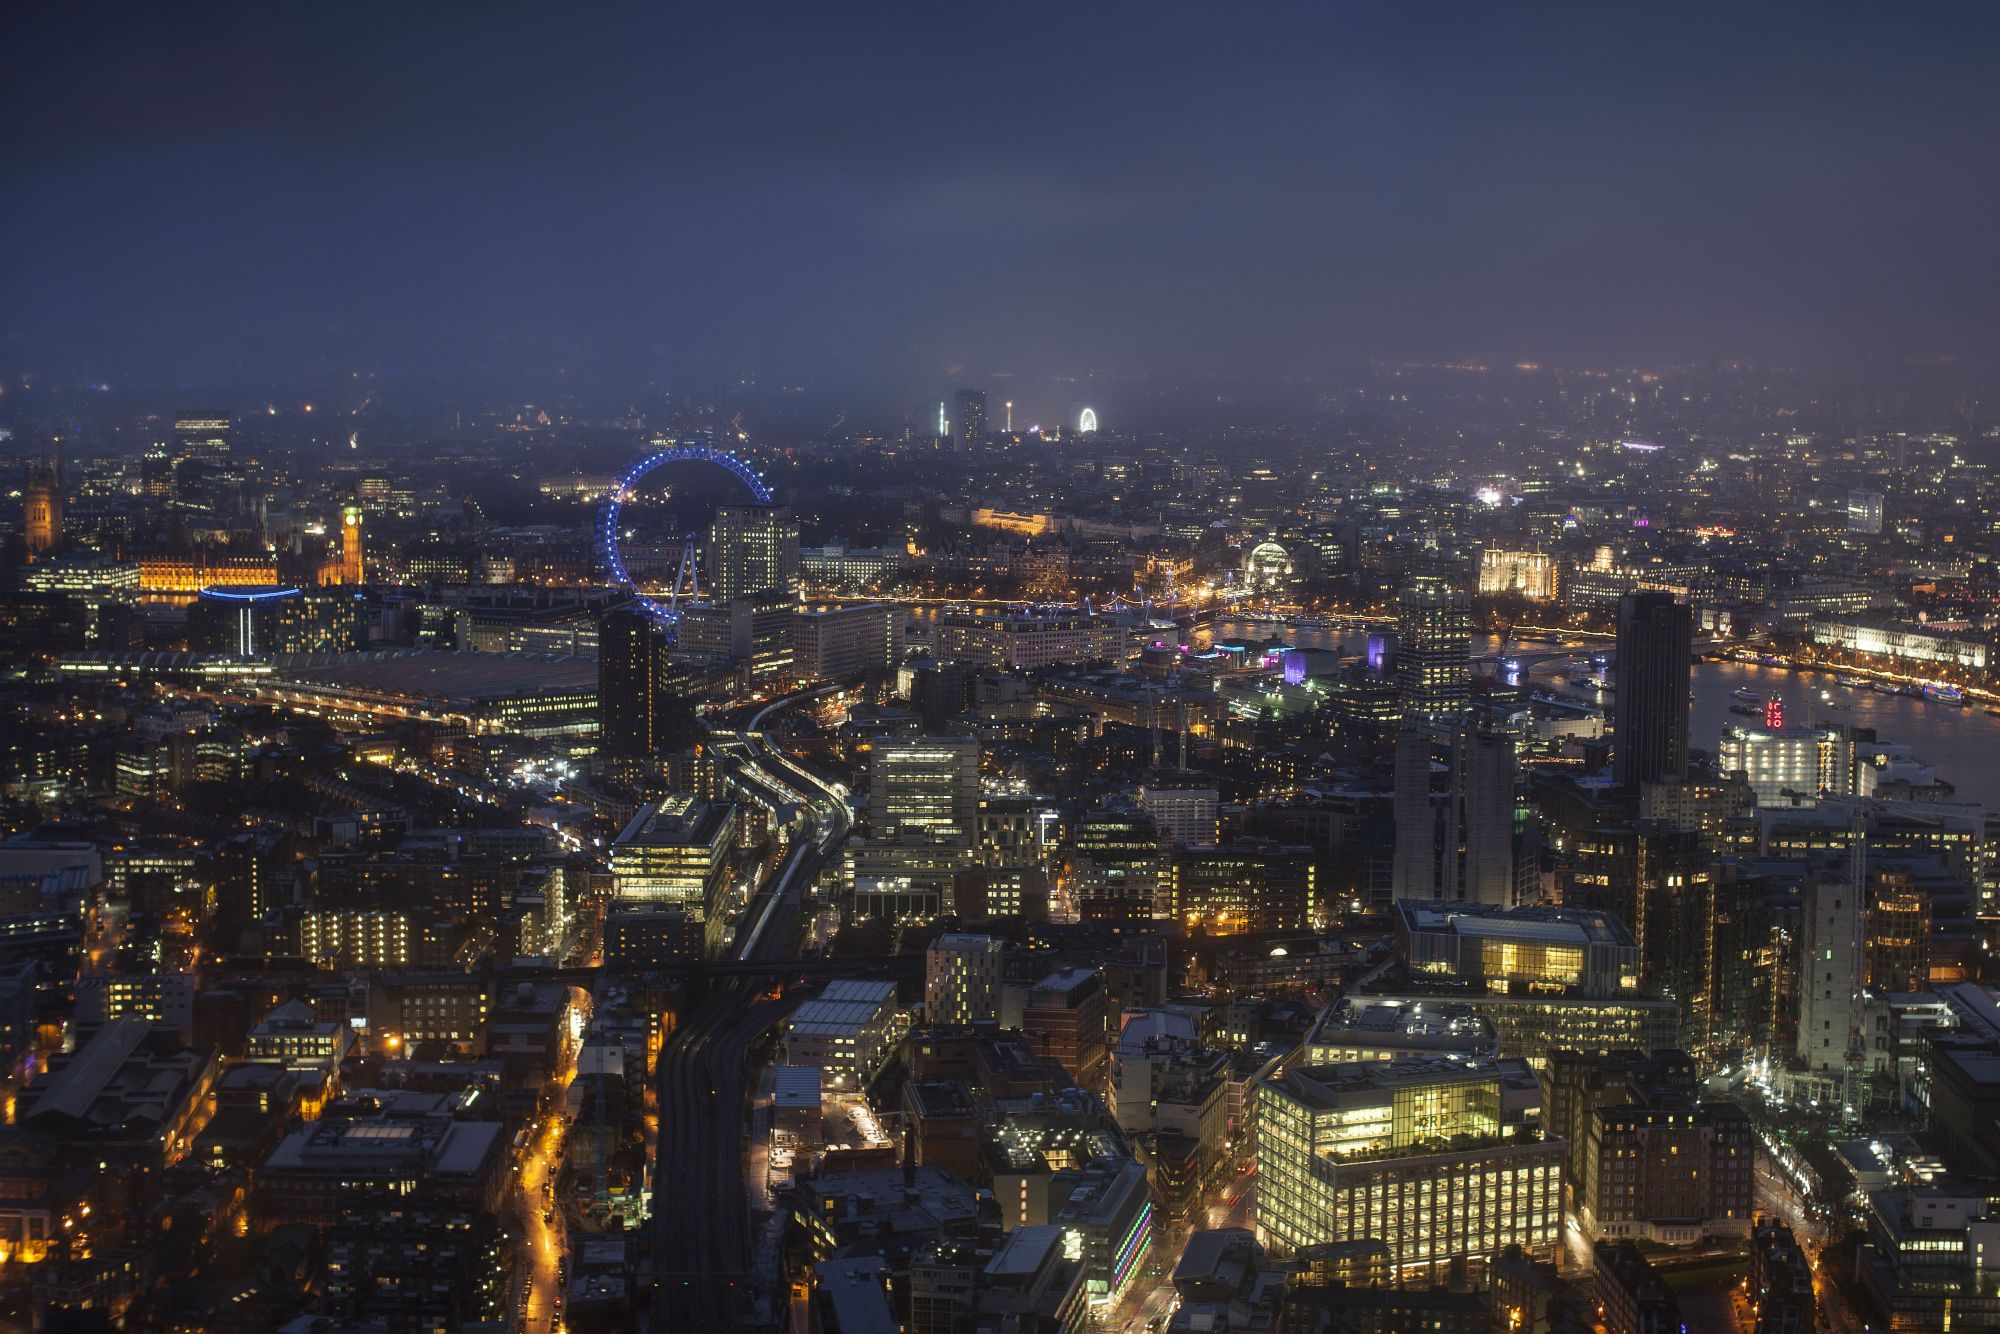 Copyright The View from the Shard